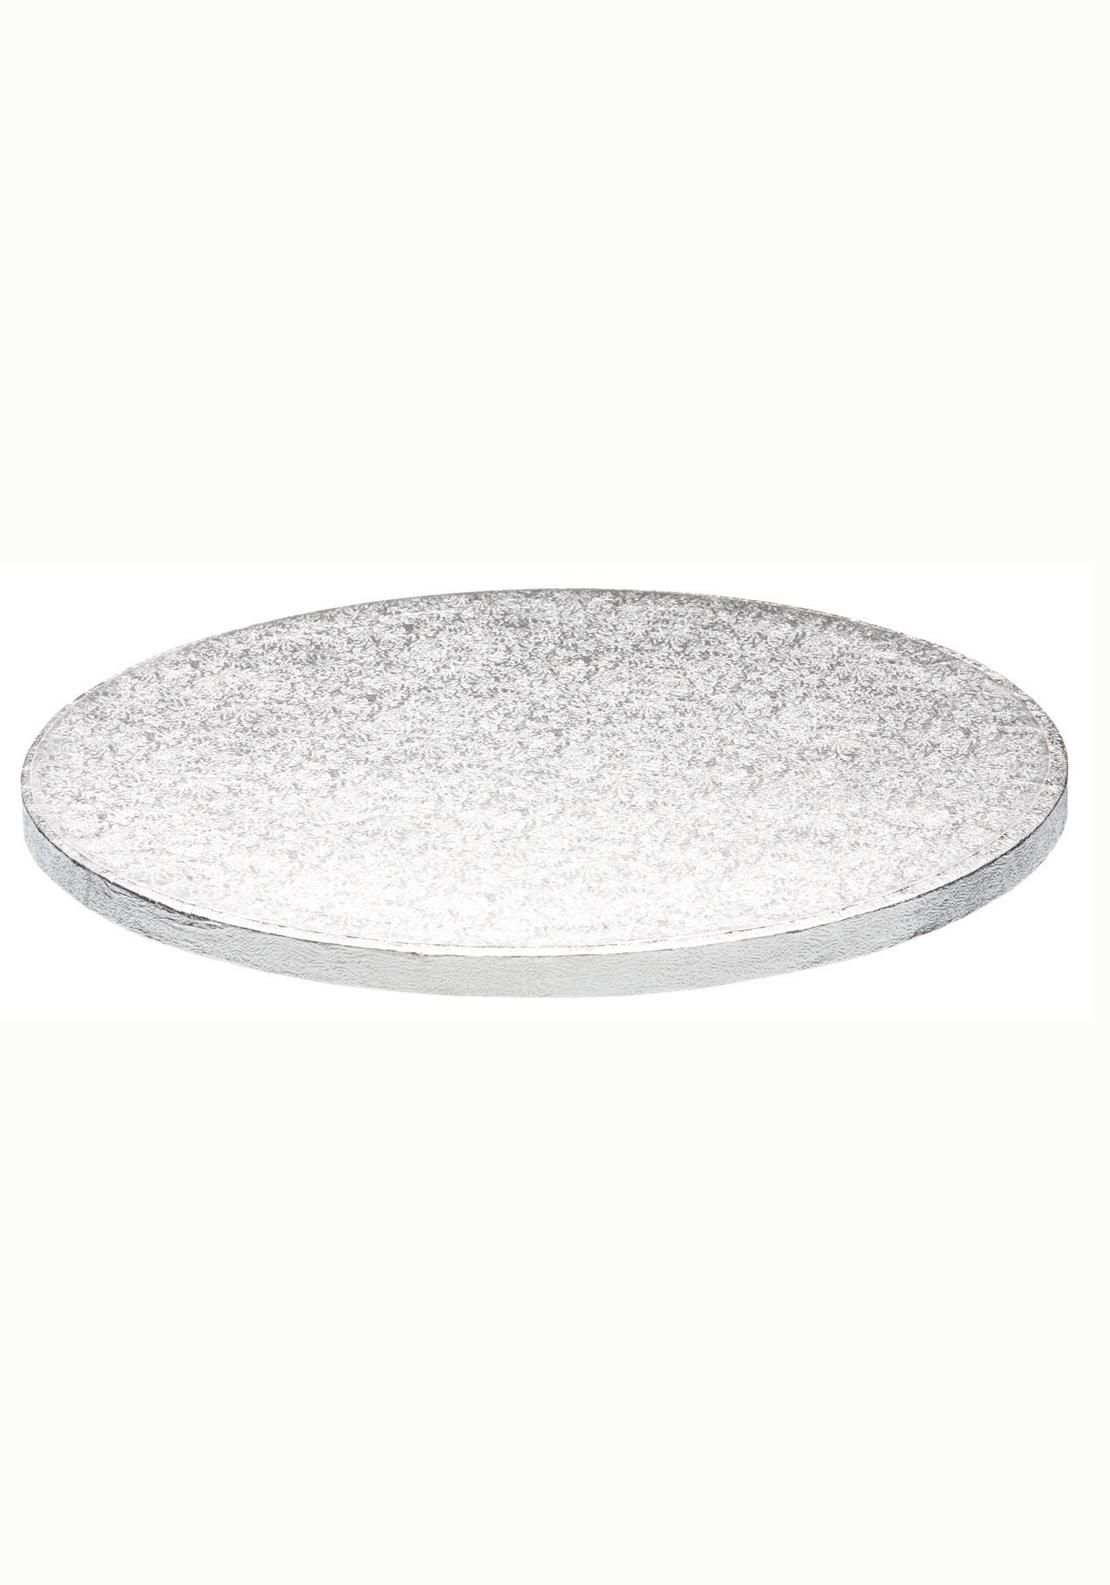 Sweetly Does It Round 25cm Cake Board